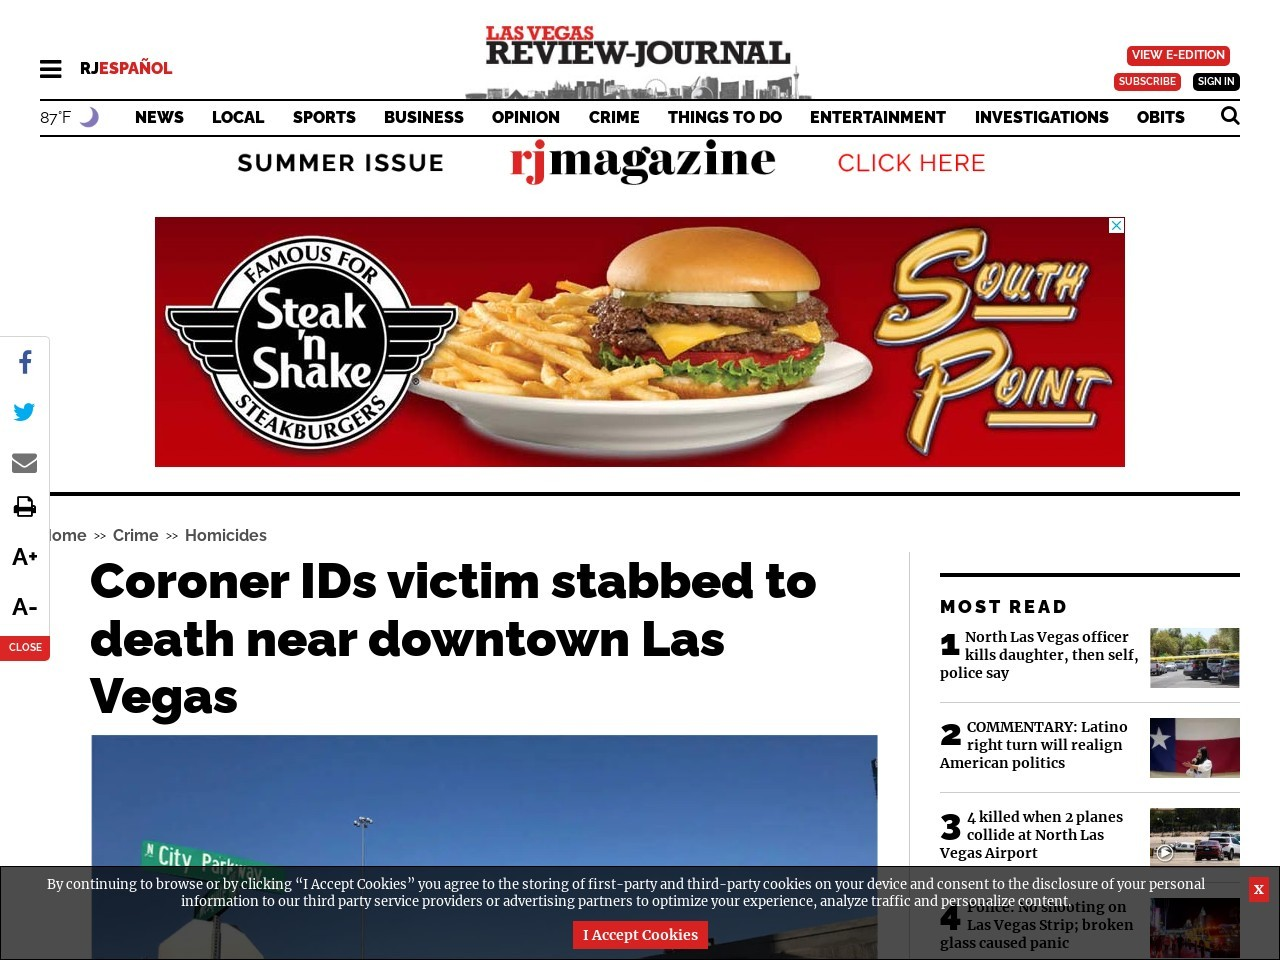 Coroner IDs victim stabbed to death near downtown Las Vegas